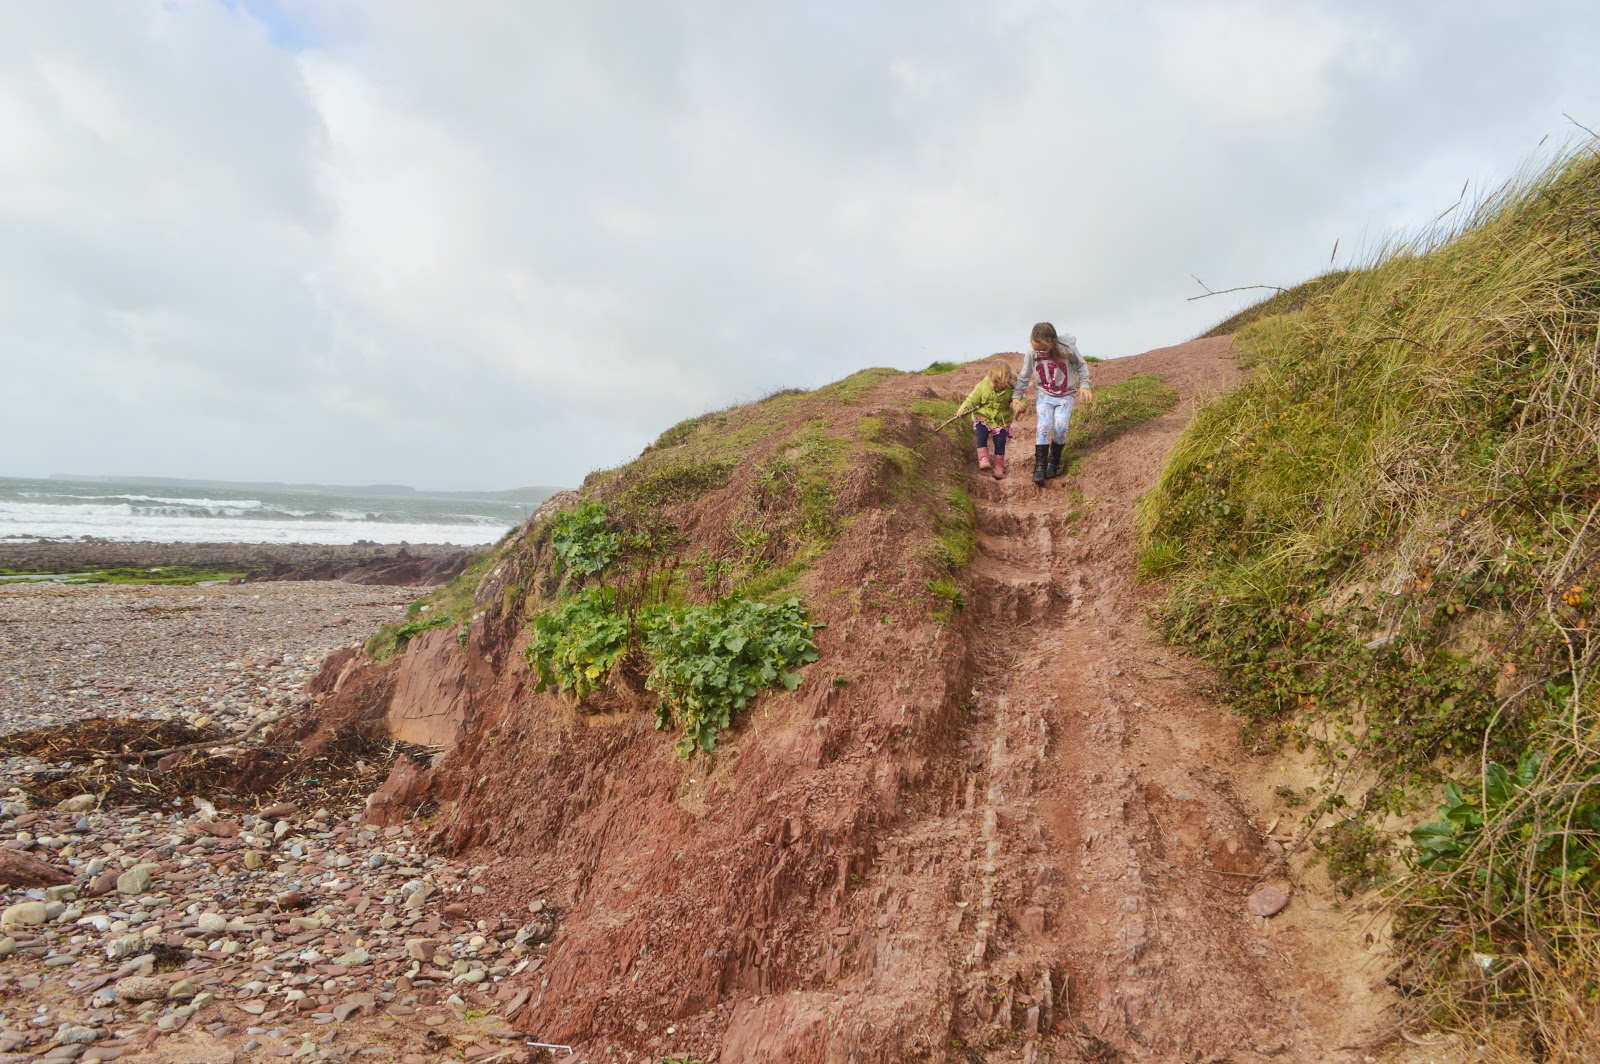 Girls Climbing Down Rocks at Manorbier Beach, Pembrokeshire, Wales